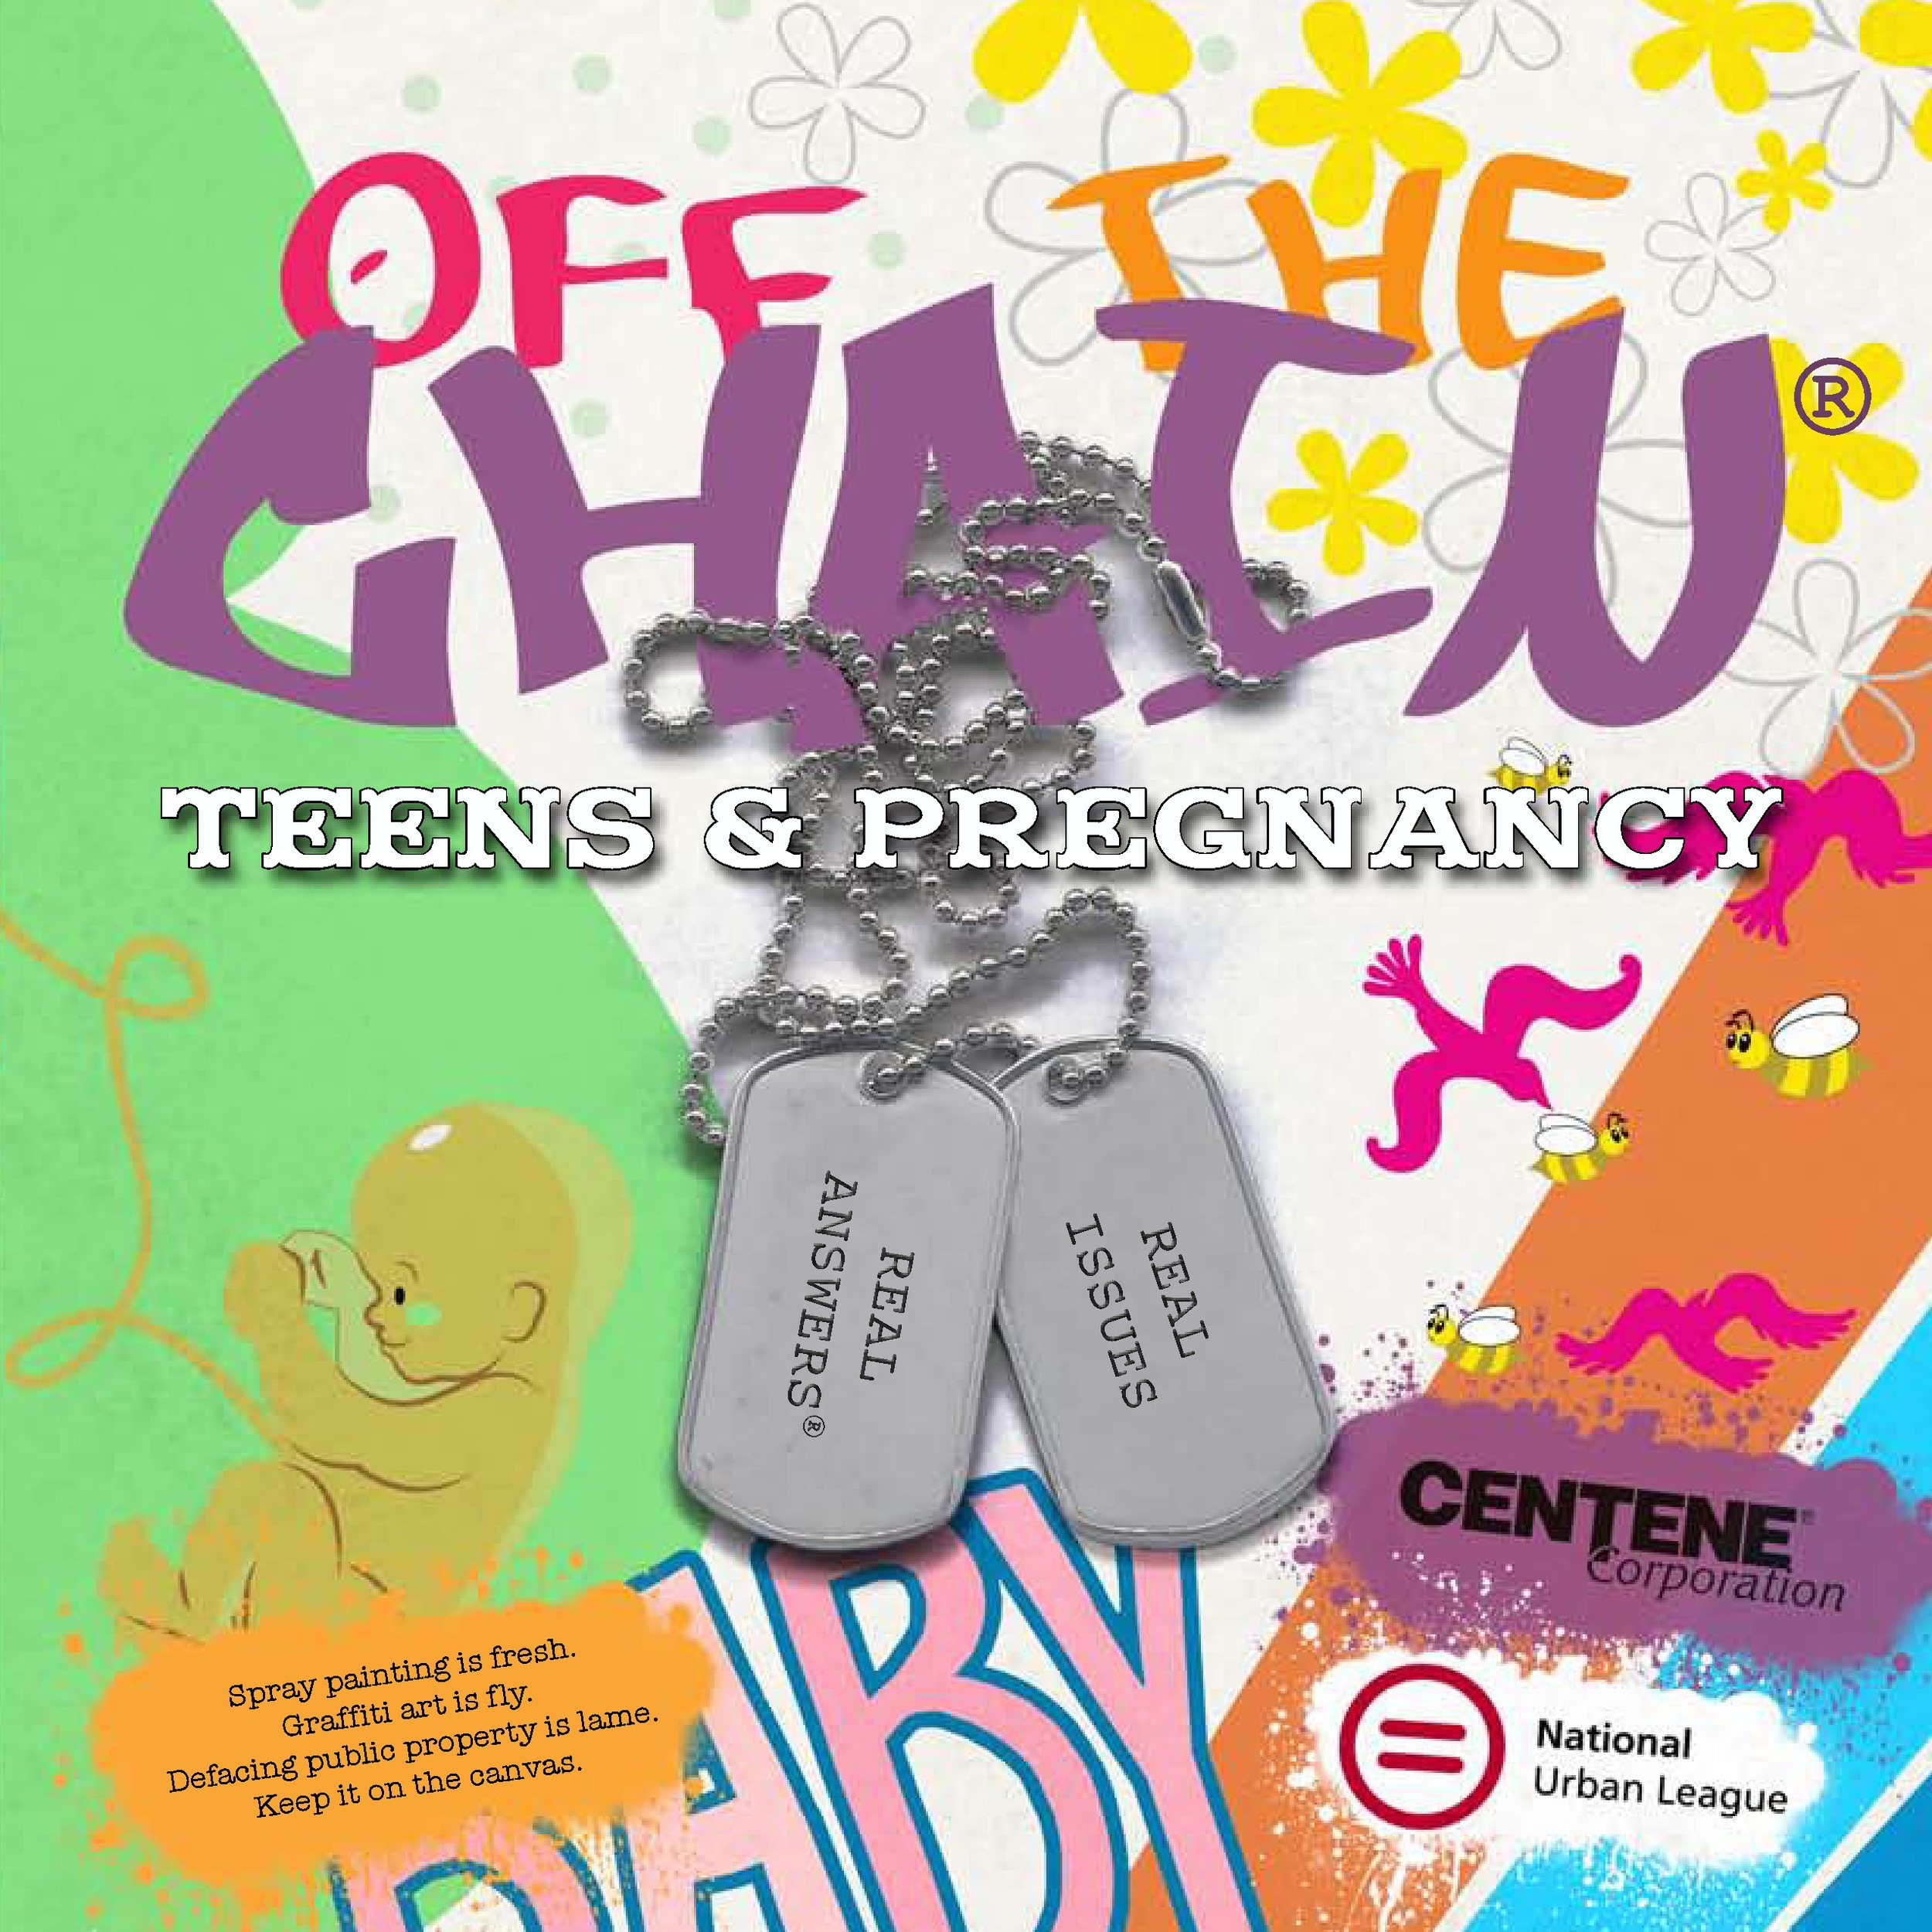 OFF THE CHAIN: Teens & Pregnancy